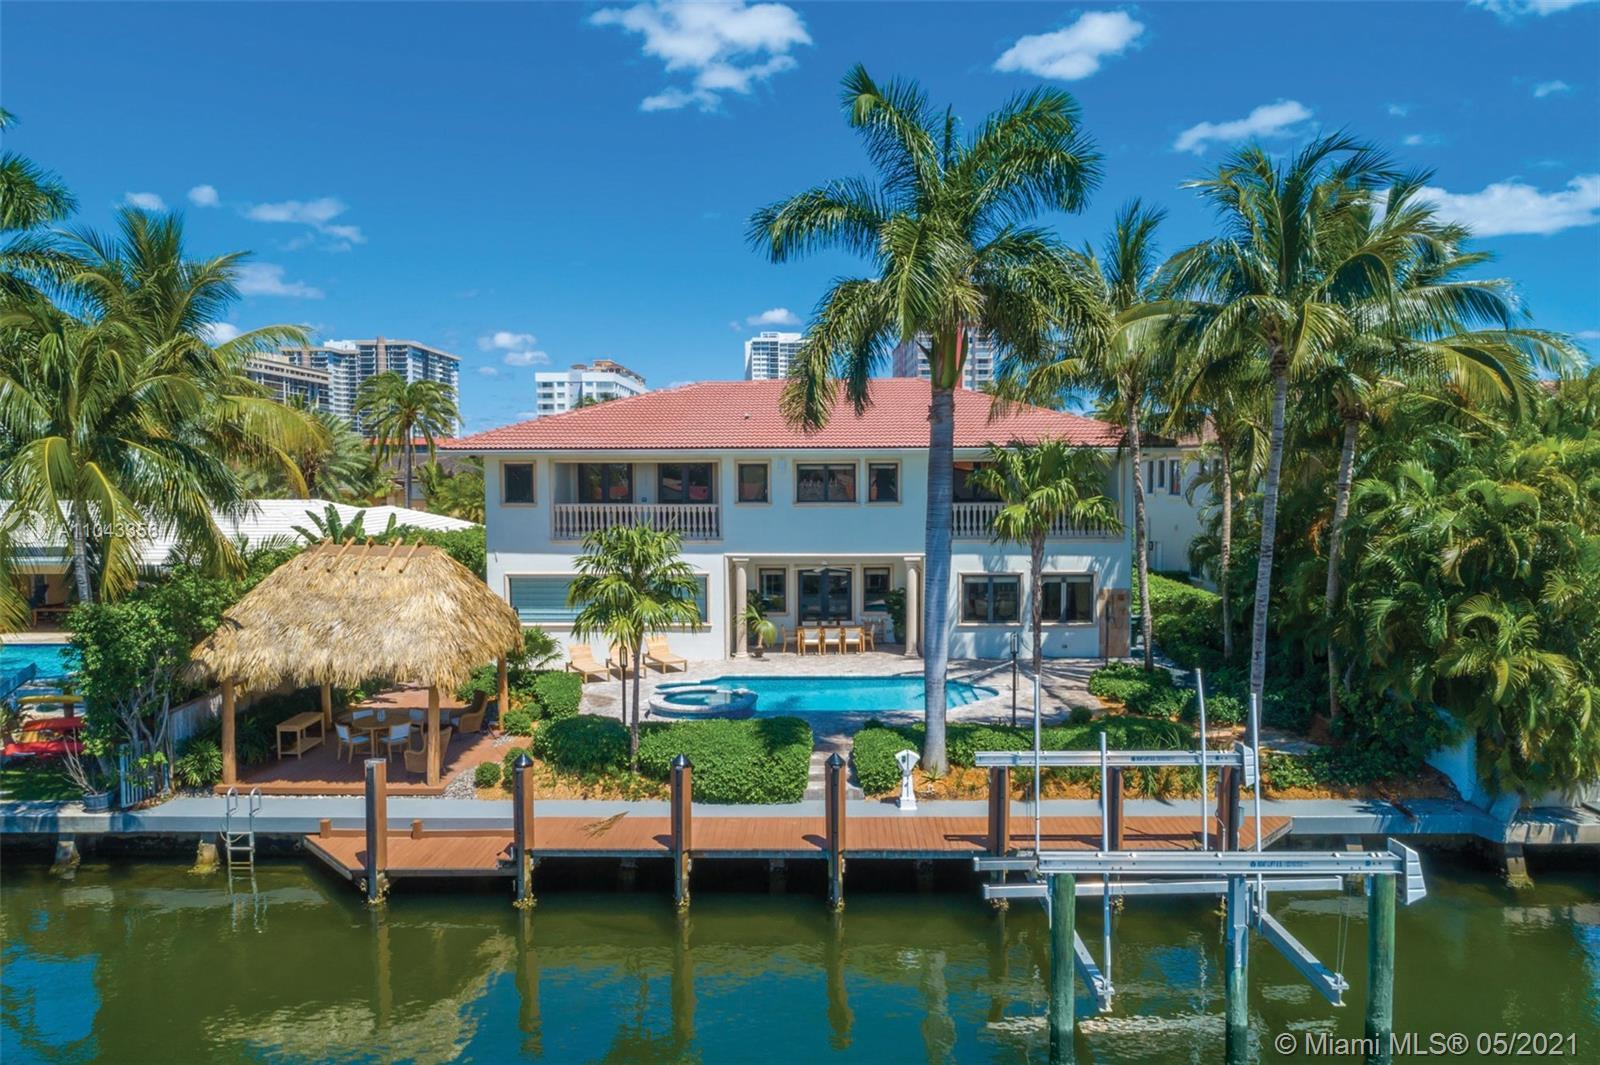 PREMIER WATERFRONT ESTATE IN CENTRALLY LOCATED, GUARD-GATED GOLDEN ISLES COMMUNITY. BOATERS PARADISE